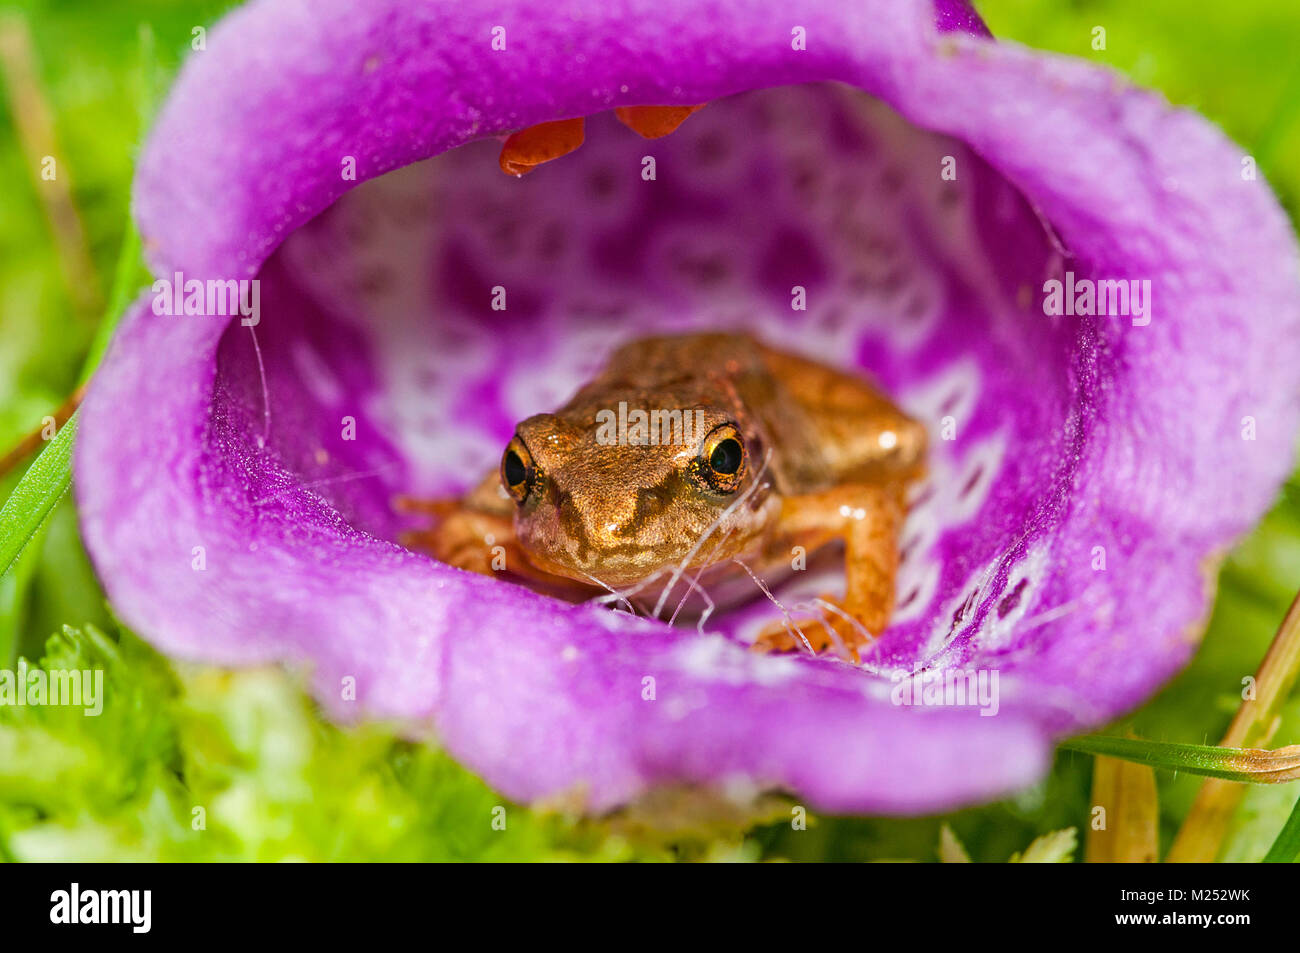 Common frog hiding inside a Foxglove flower in the New Forest National Park, Hampshire, UK - Stock Image